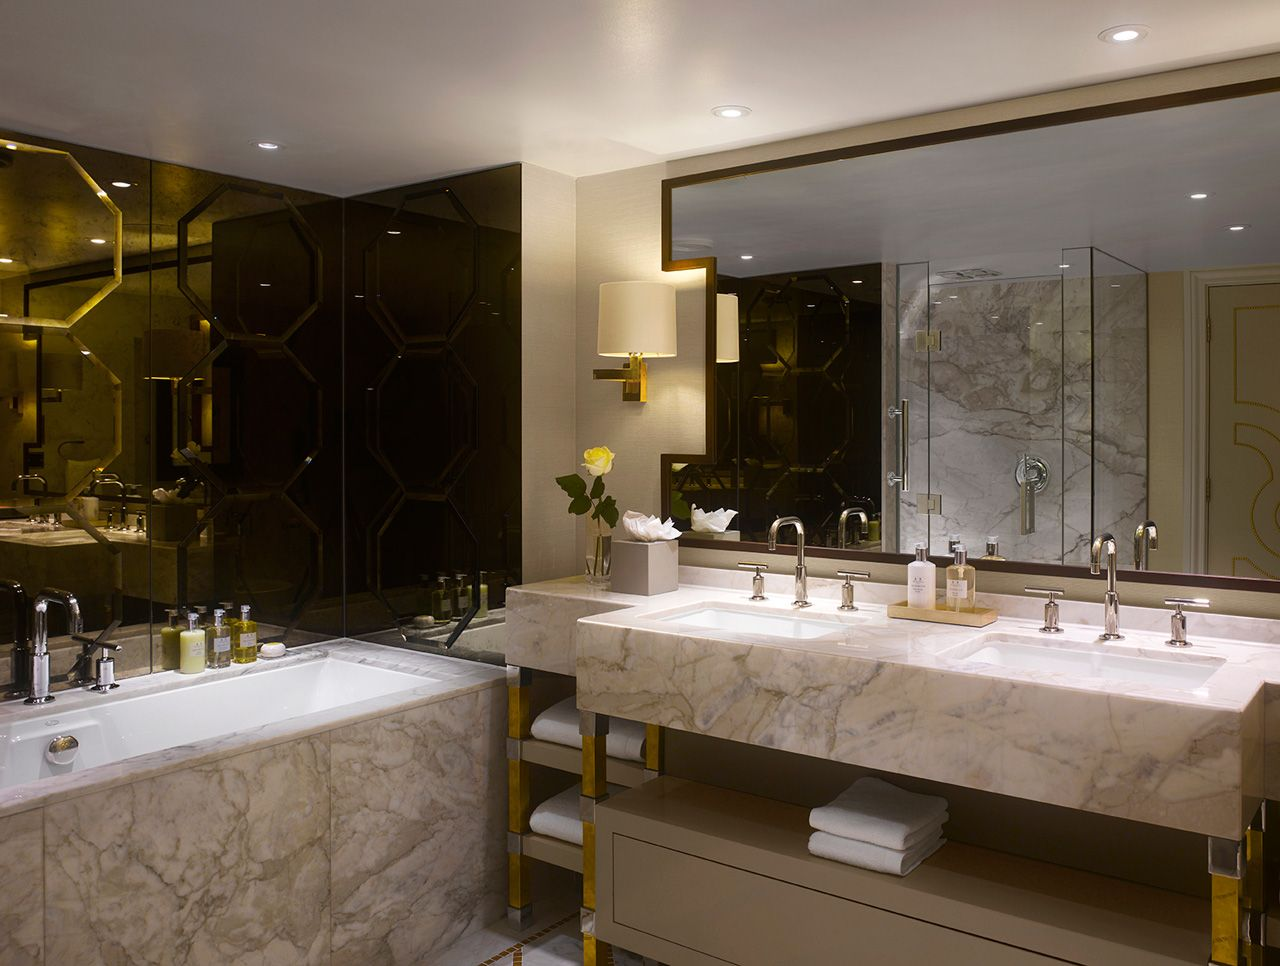 13 best best hotel bathrooms images on pinterest hotel bathrooms hba protfolio intercontinental london park lane bathroom mirrorsbathroom ideashotel bathroomshospitality designbathroom